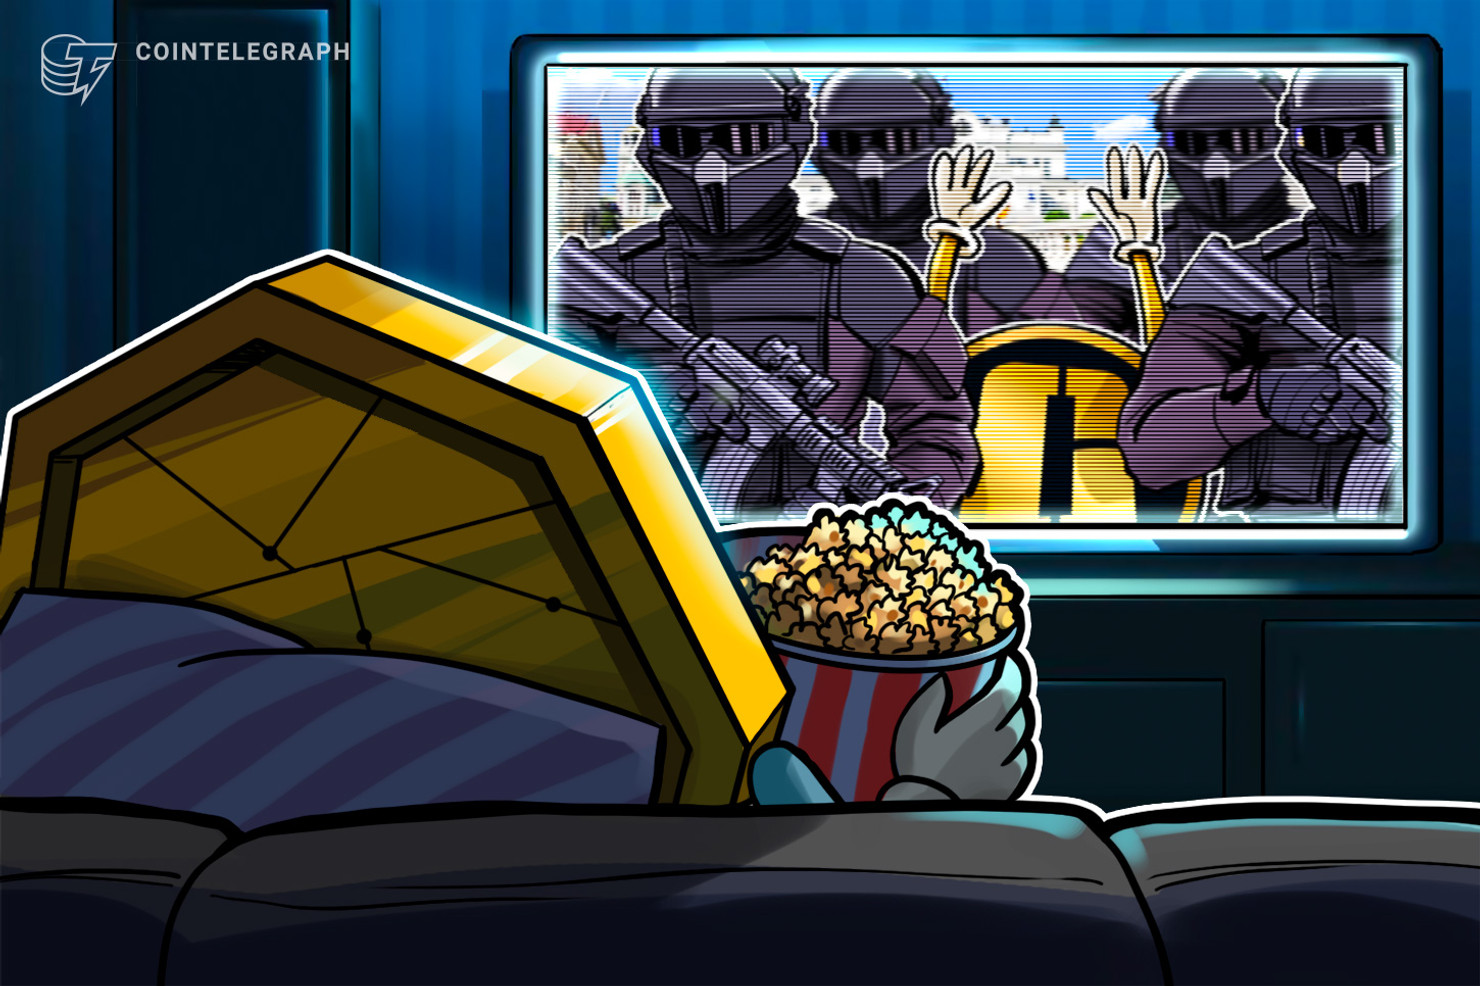 One Coin, Much Drama: OneCoin Ponzi Scheme Lives on as TV Show